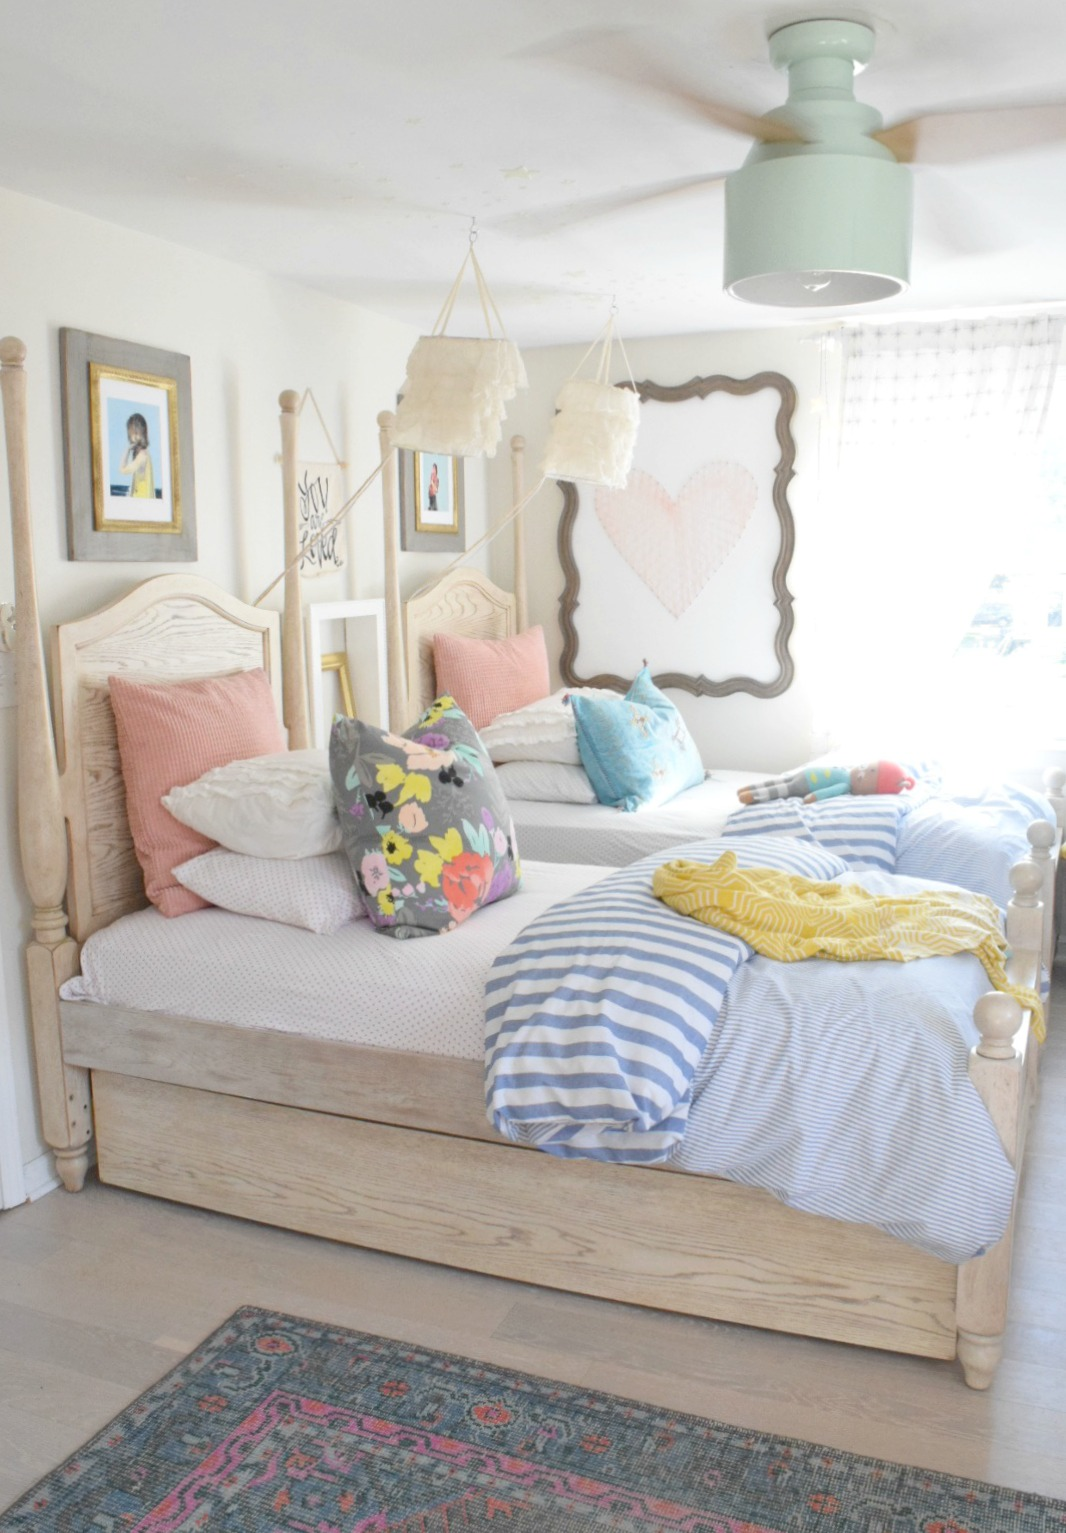 Summer home decor ideas our summer tour 2017 nesting - Home decor ideas bedroom ...